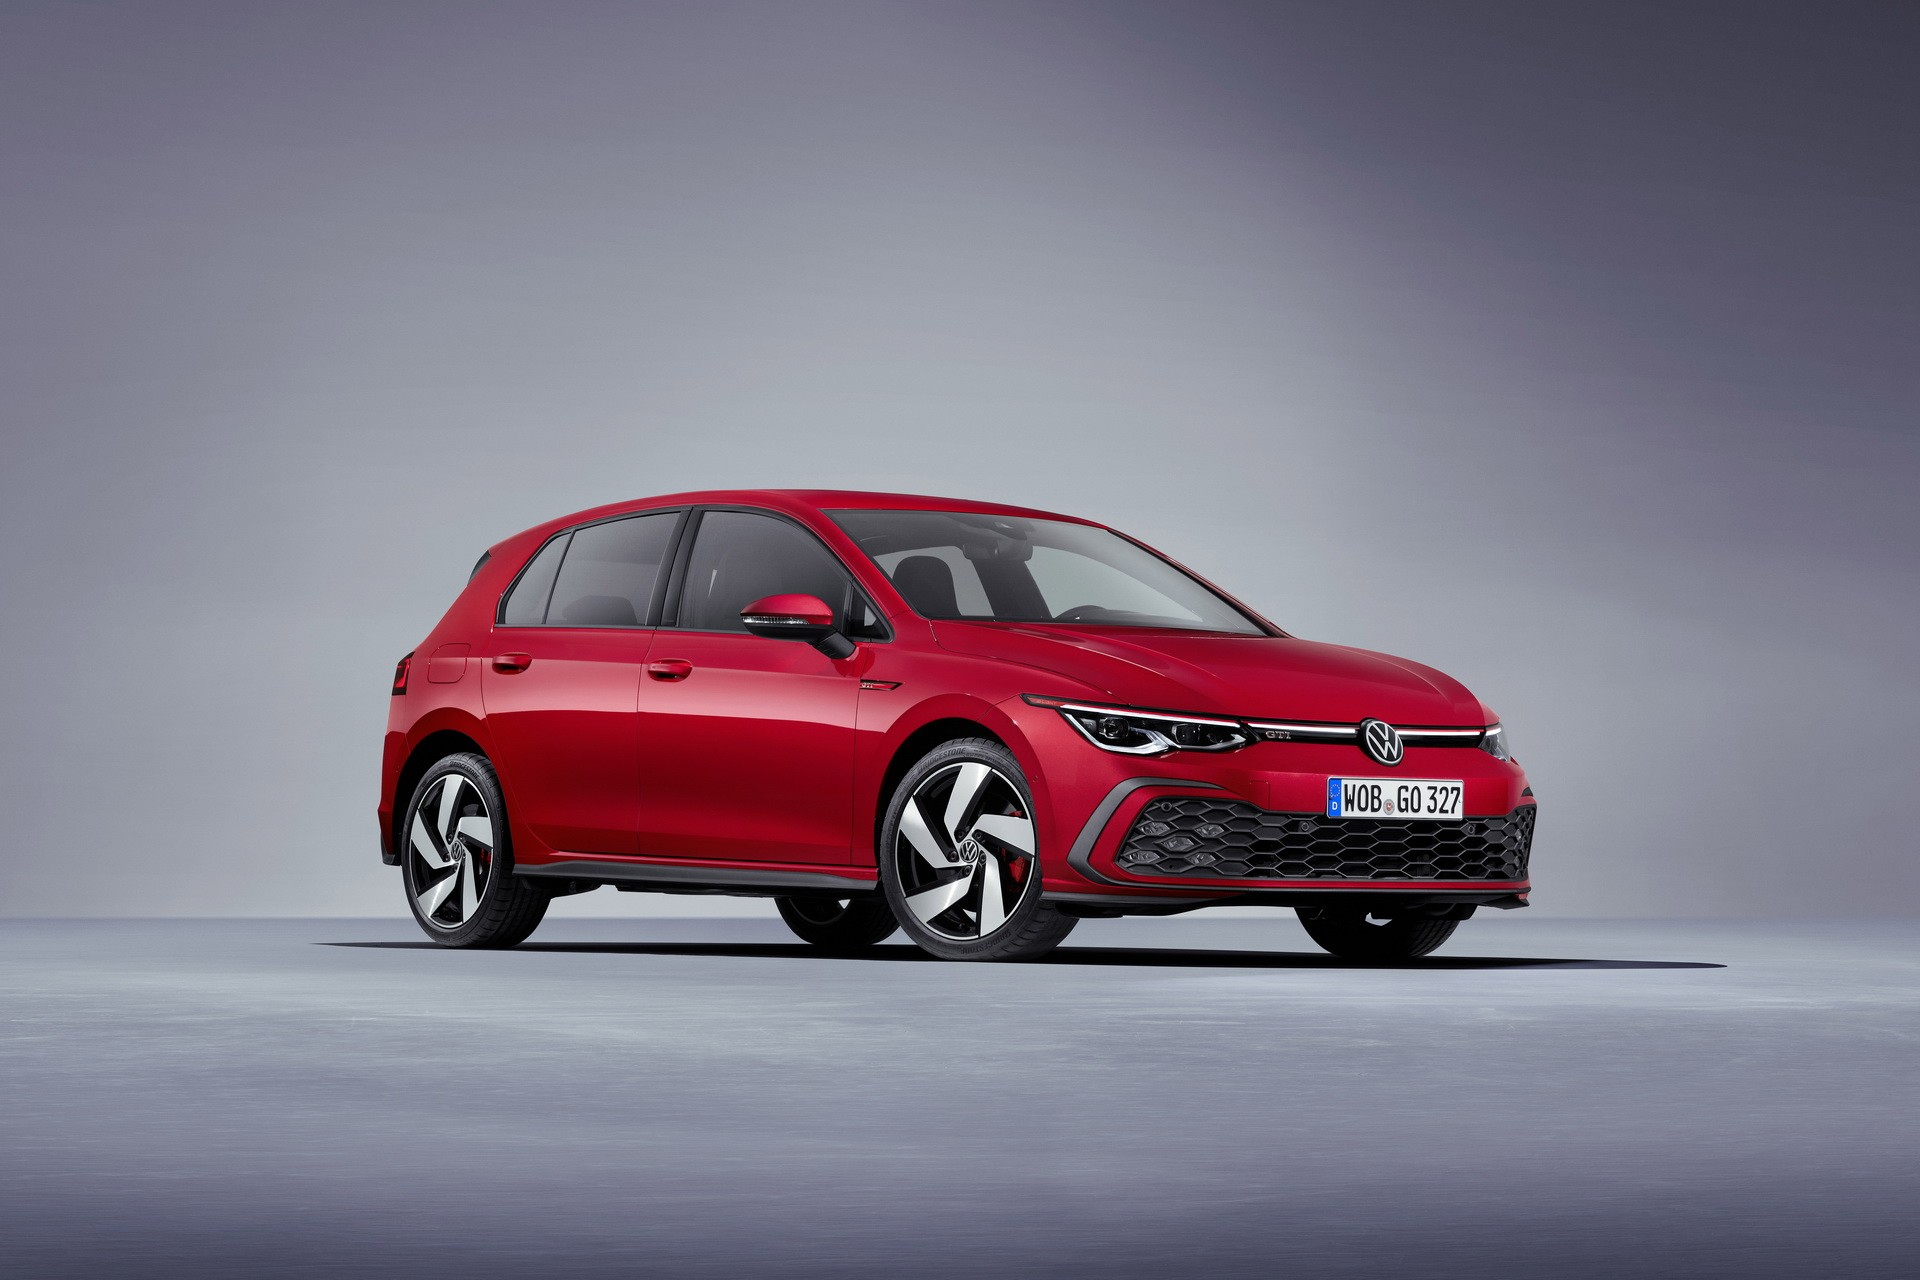 new-volkswagen-golf-mk-8-deliveries-stopped-over-ecall-software-issue_3